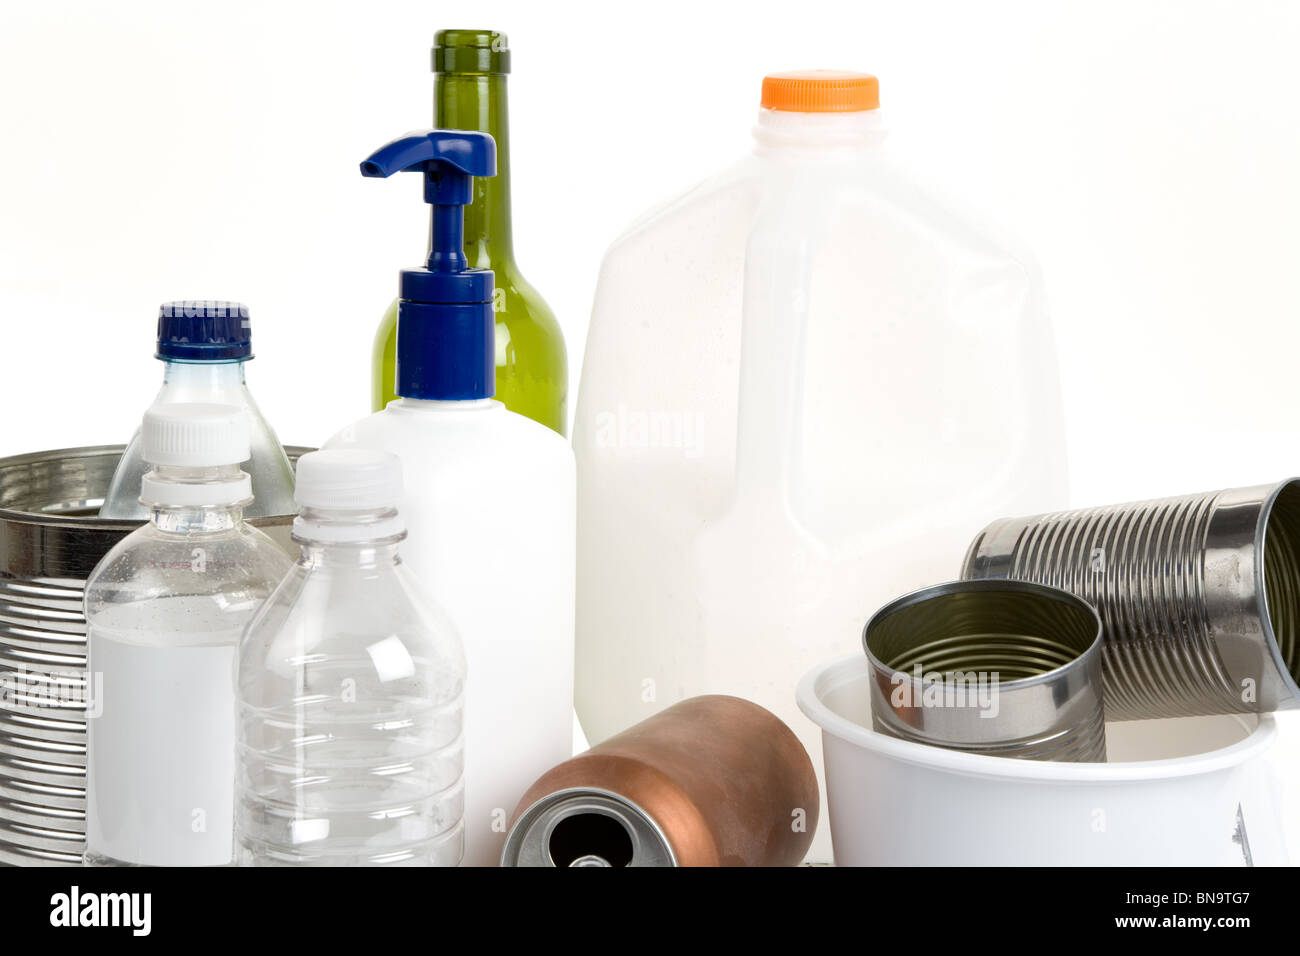 Plastic Bottle, Can, Glass, concept of recycling - Stock Image